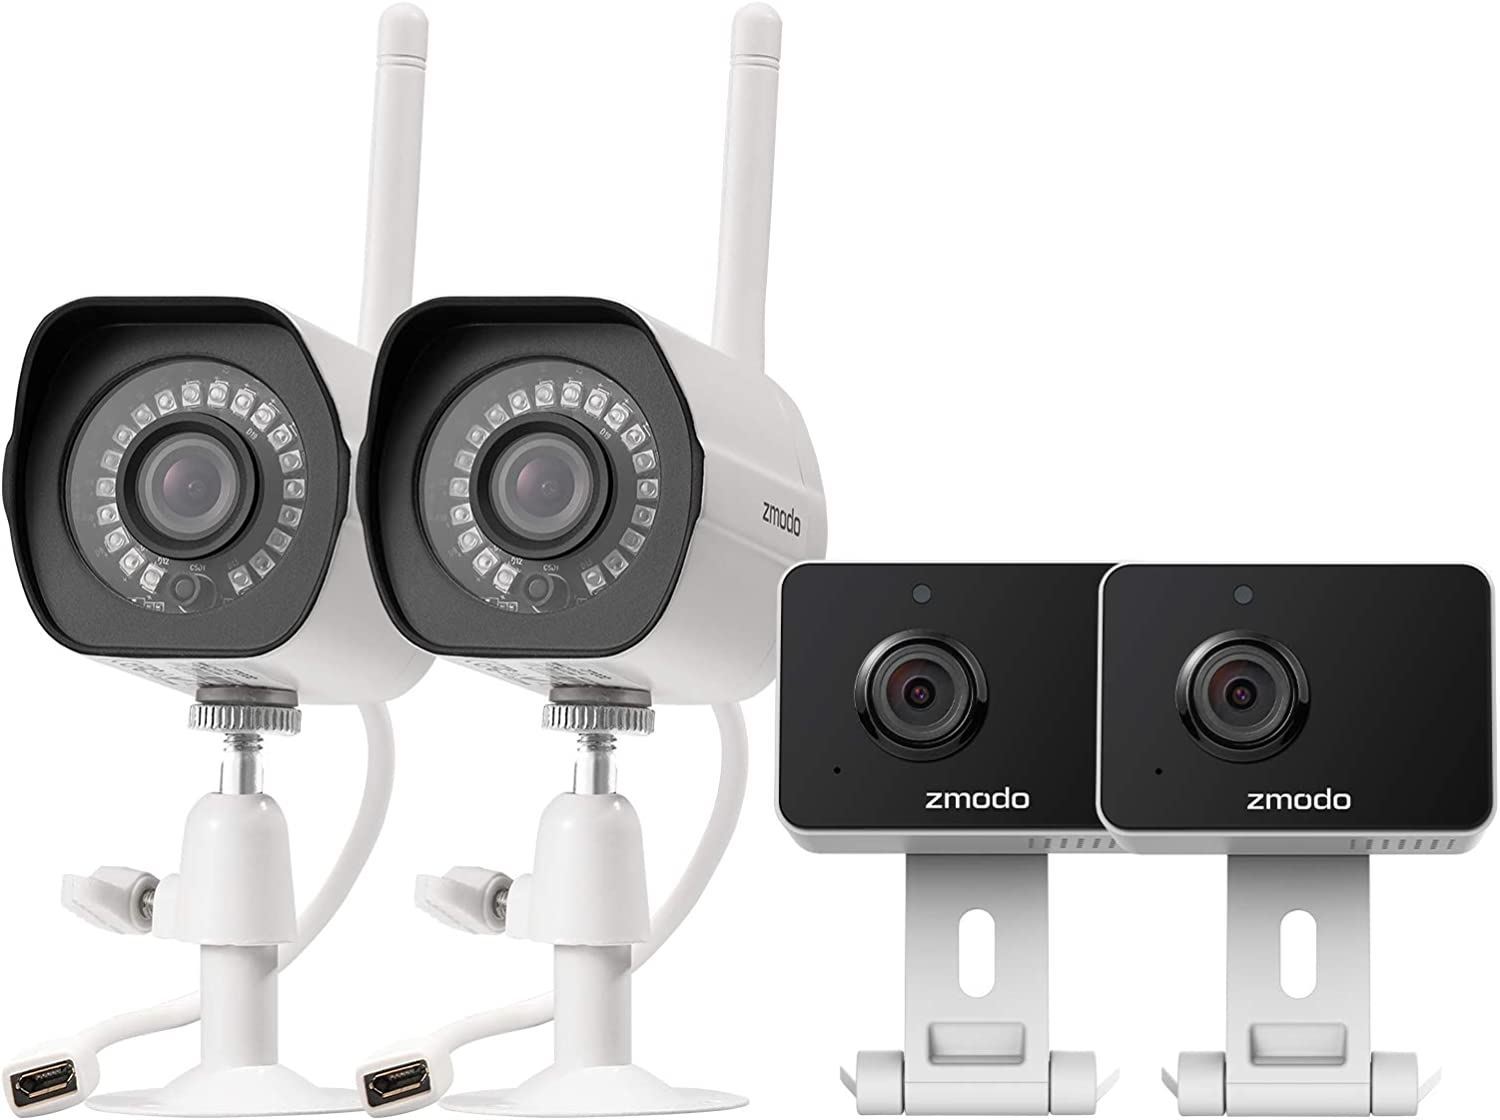 Zmodo Cameras for Home Security (Wireless Indoor & Outdoor Camera Bundle 4 Pack), 1080p HD, IP Camera, Motion Detection, Two-Way Talk, Night Vision, Remote View, Cloud Service, Work with Alexa/Google